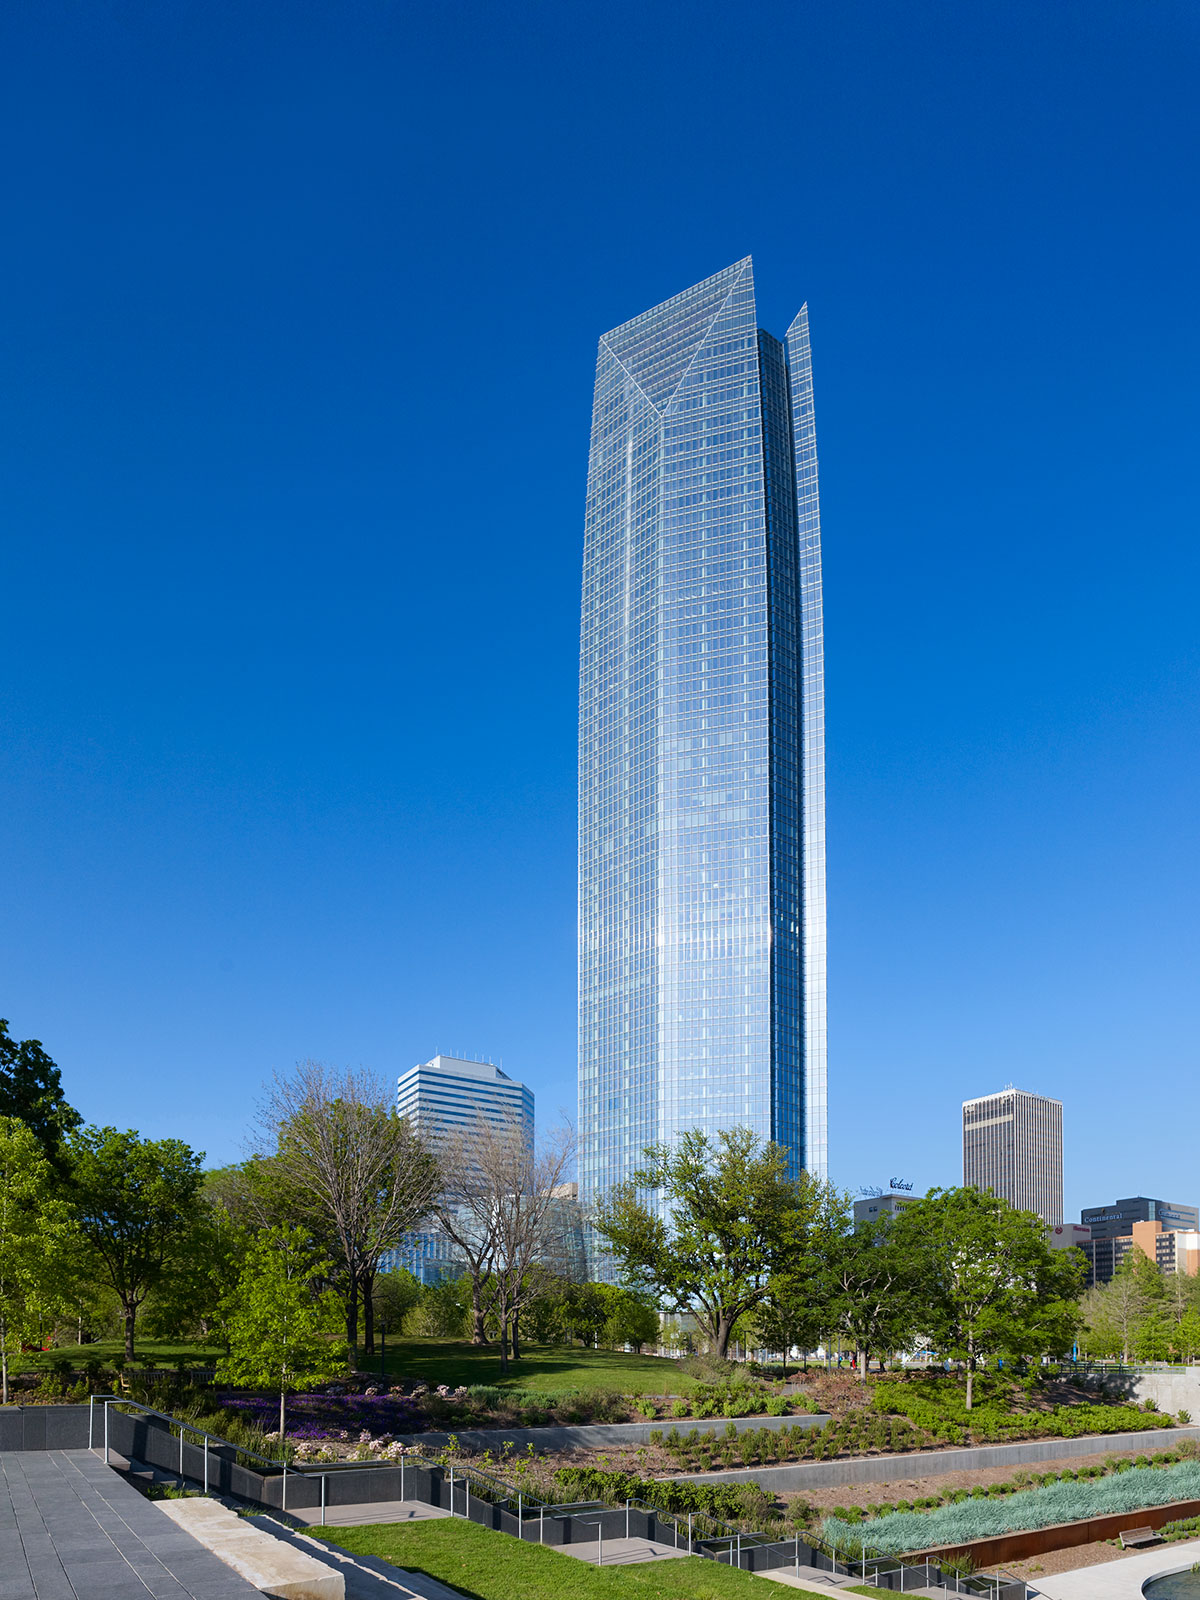 Devon Energy Corporation Headquarters